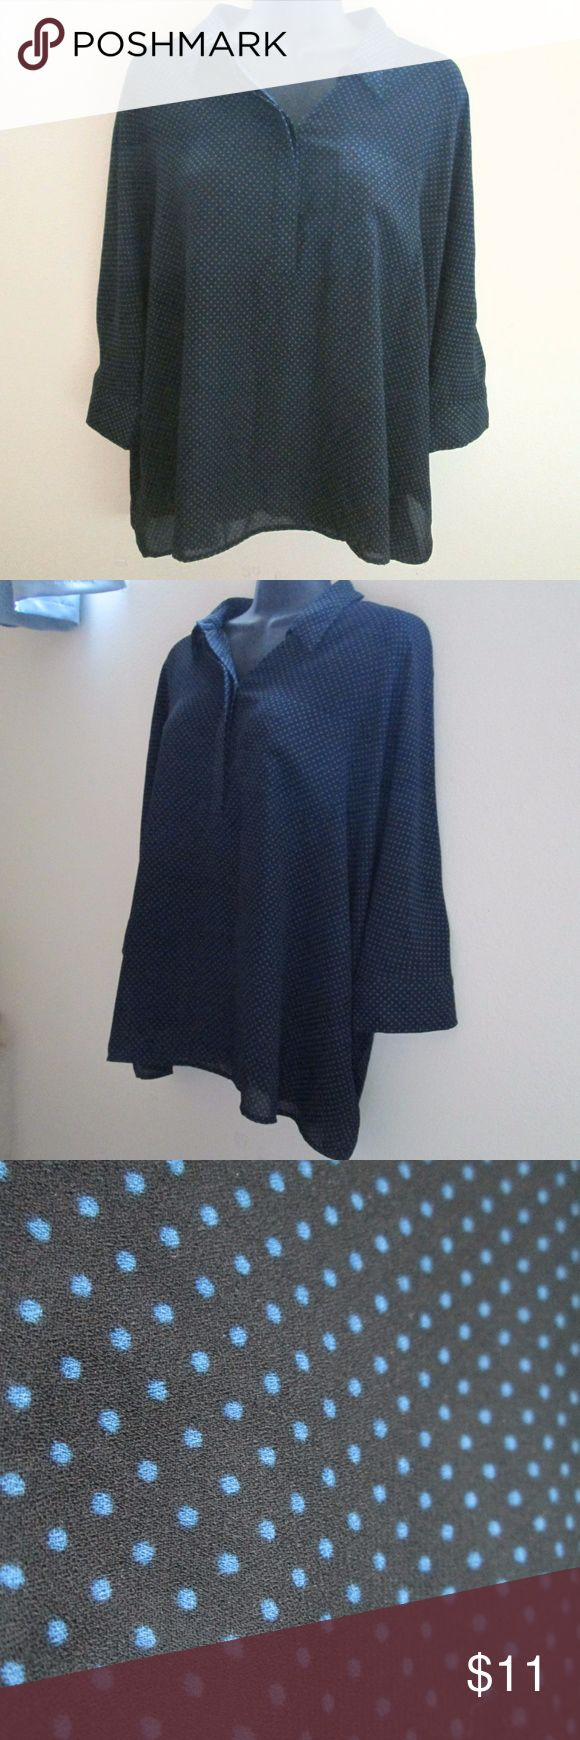 "Ann Taylor LOFT Oversized Polka Dot Blouse Excellent condition - no holes, stains or rips. Black with blue polka dots. Oversize/slouchy fit. Dolman sleeves. Measures 28"" across the bust (lying flat) and 25"" from the top of the shoulder to the bottom of the hem. Comes from a smoke-free home.  No trades. No holds. LOFT Tops Blouses"